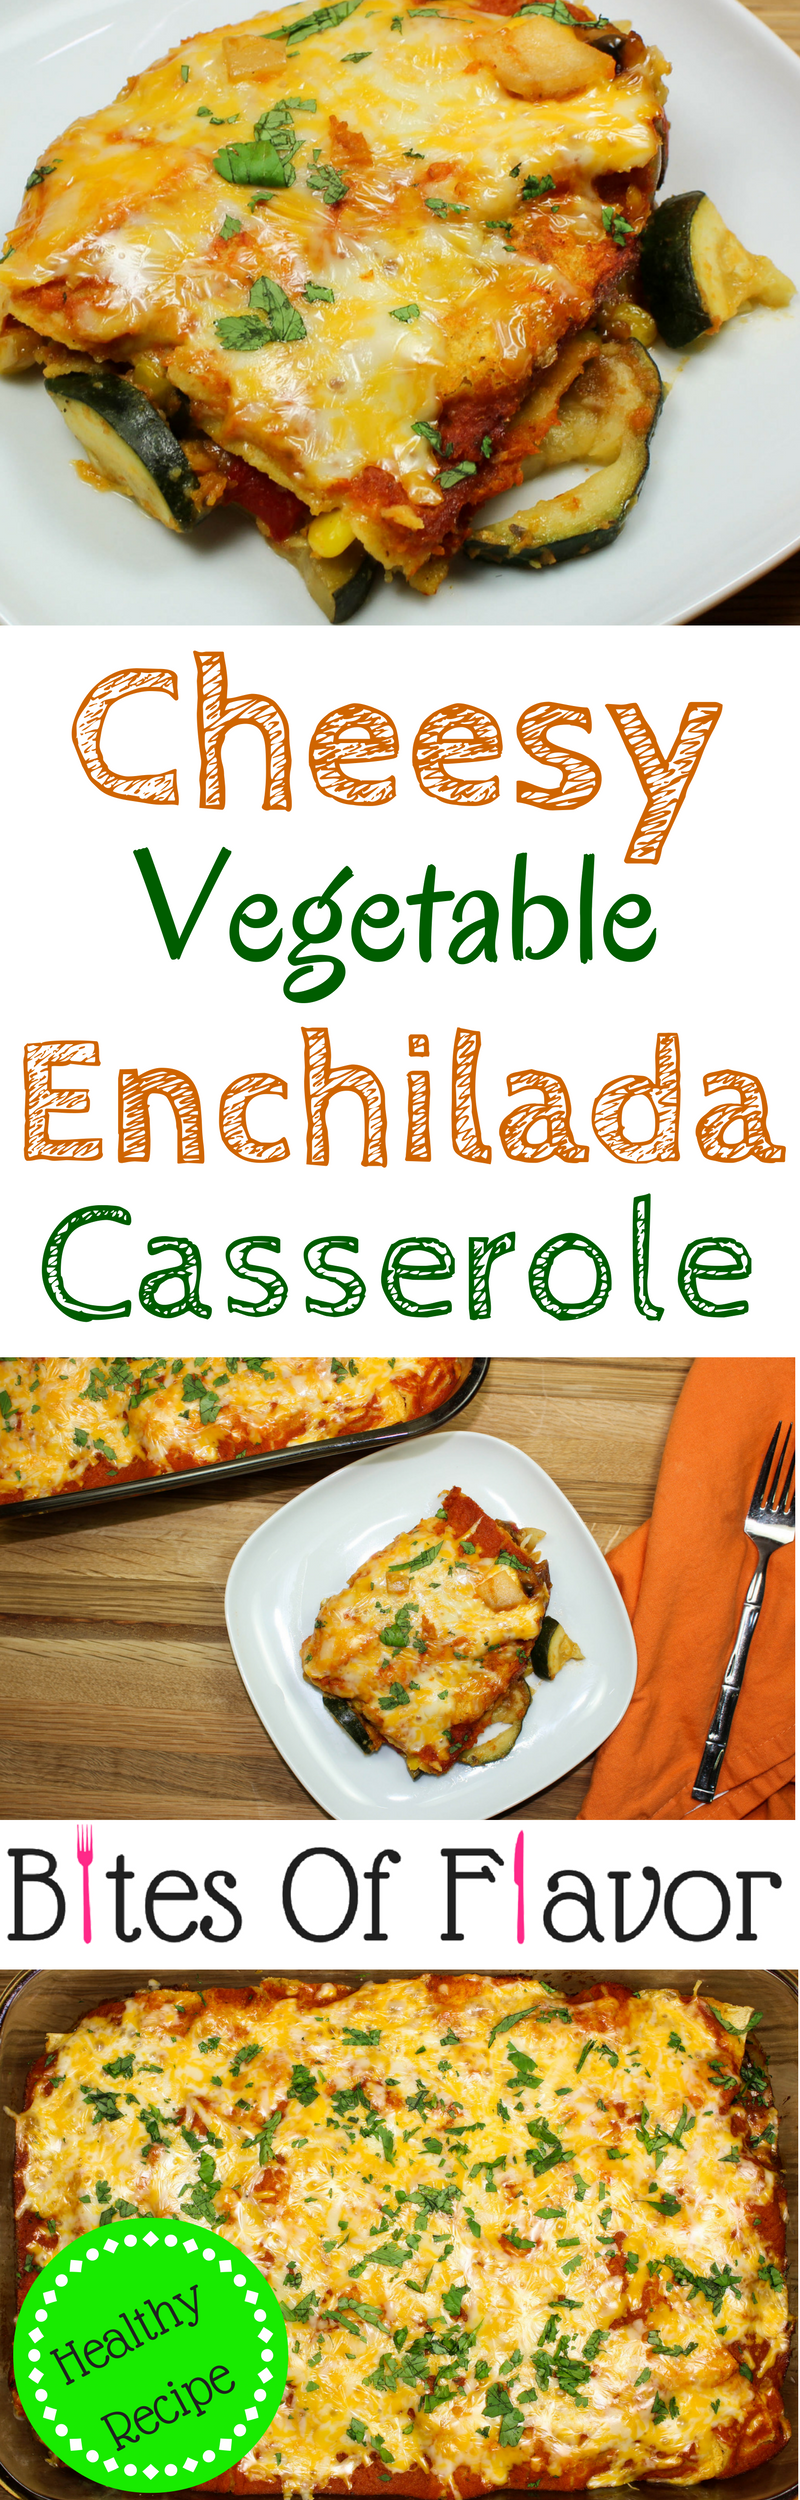 Cheesy Vegetable Enchilada Casserole-Everything you love about enchiladas. Layers of enchilada sauce, delicious seasoned vegetables, & tortillas topped with cheese. Great to feed a crowd & makes for amazing leftovers! Full of flavor & low fat. Weight Watchers friendly (7 SmartPoints).